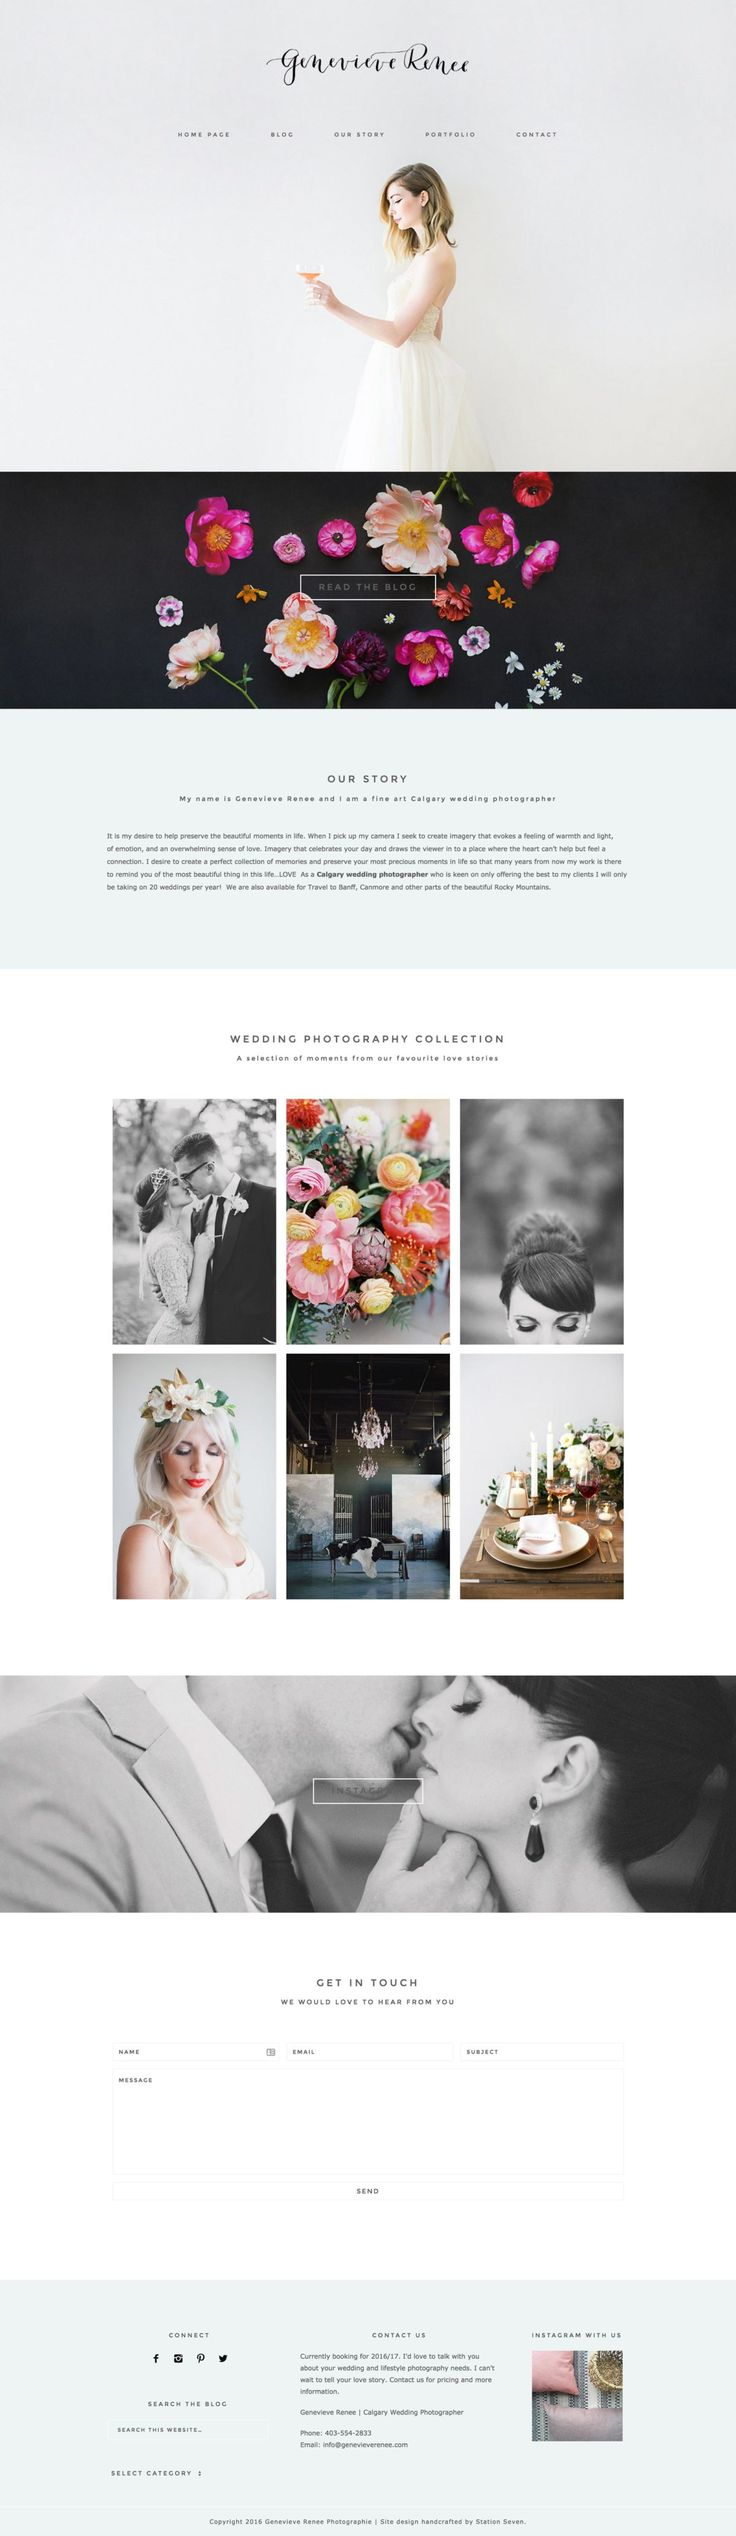 Showcase - Station Seven WordPress Themes + Design Kits